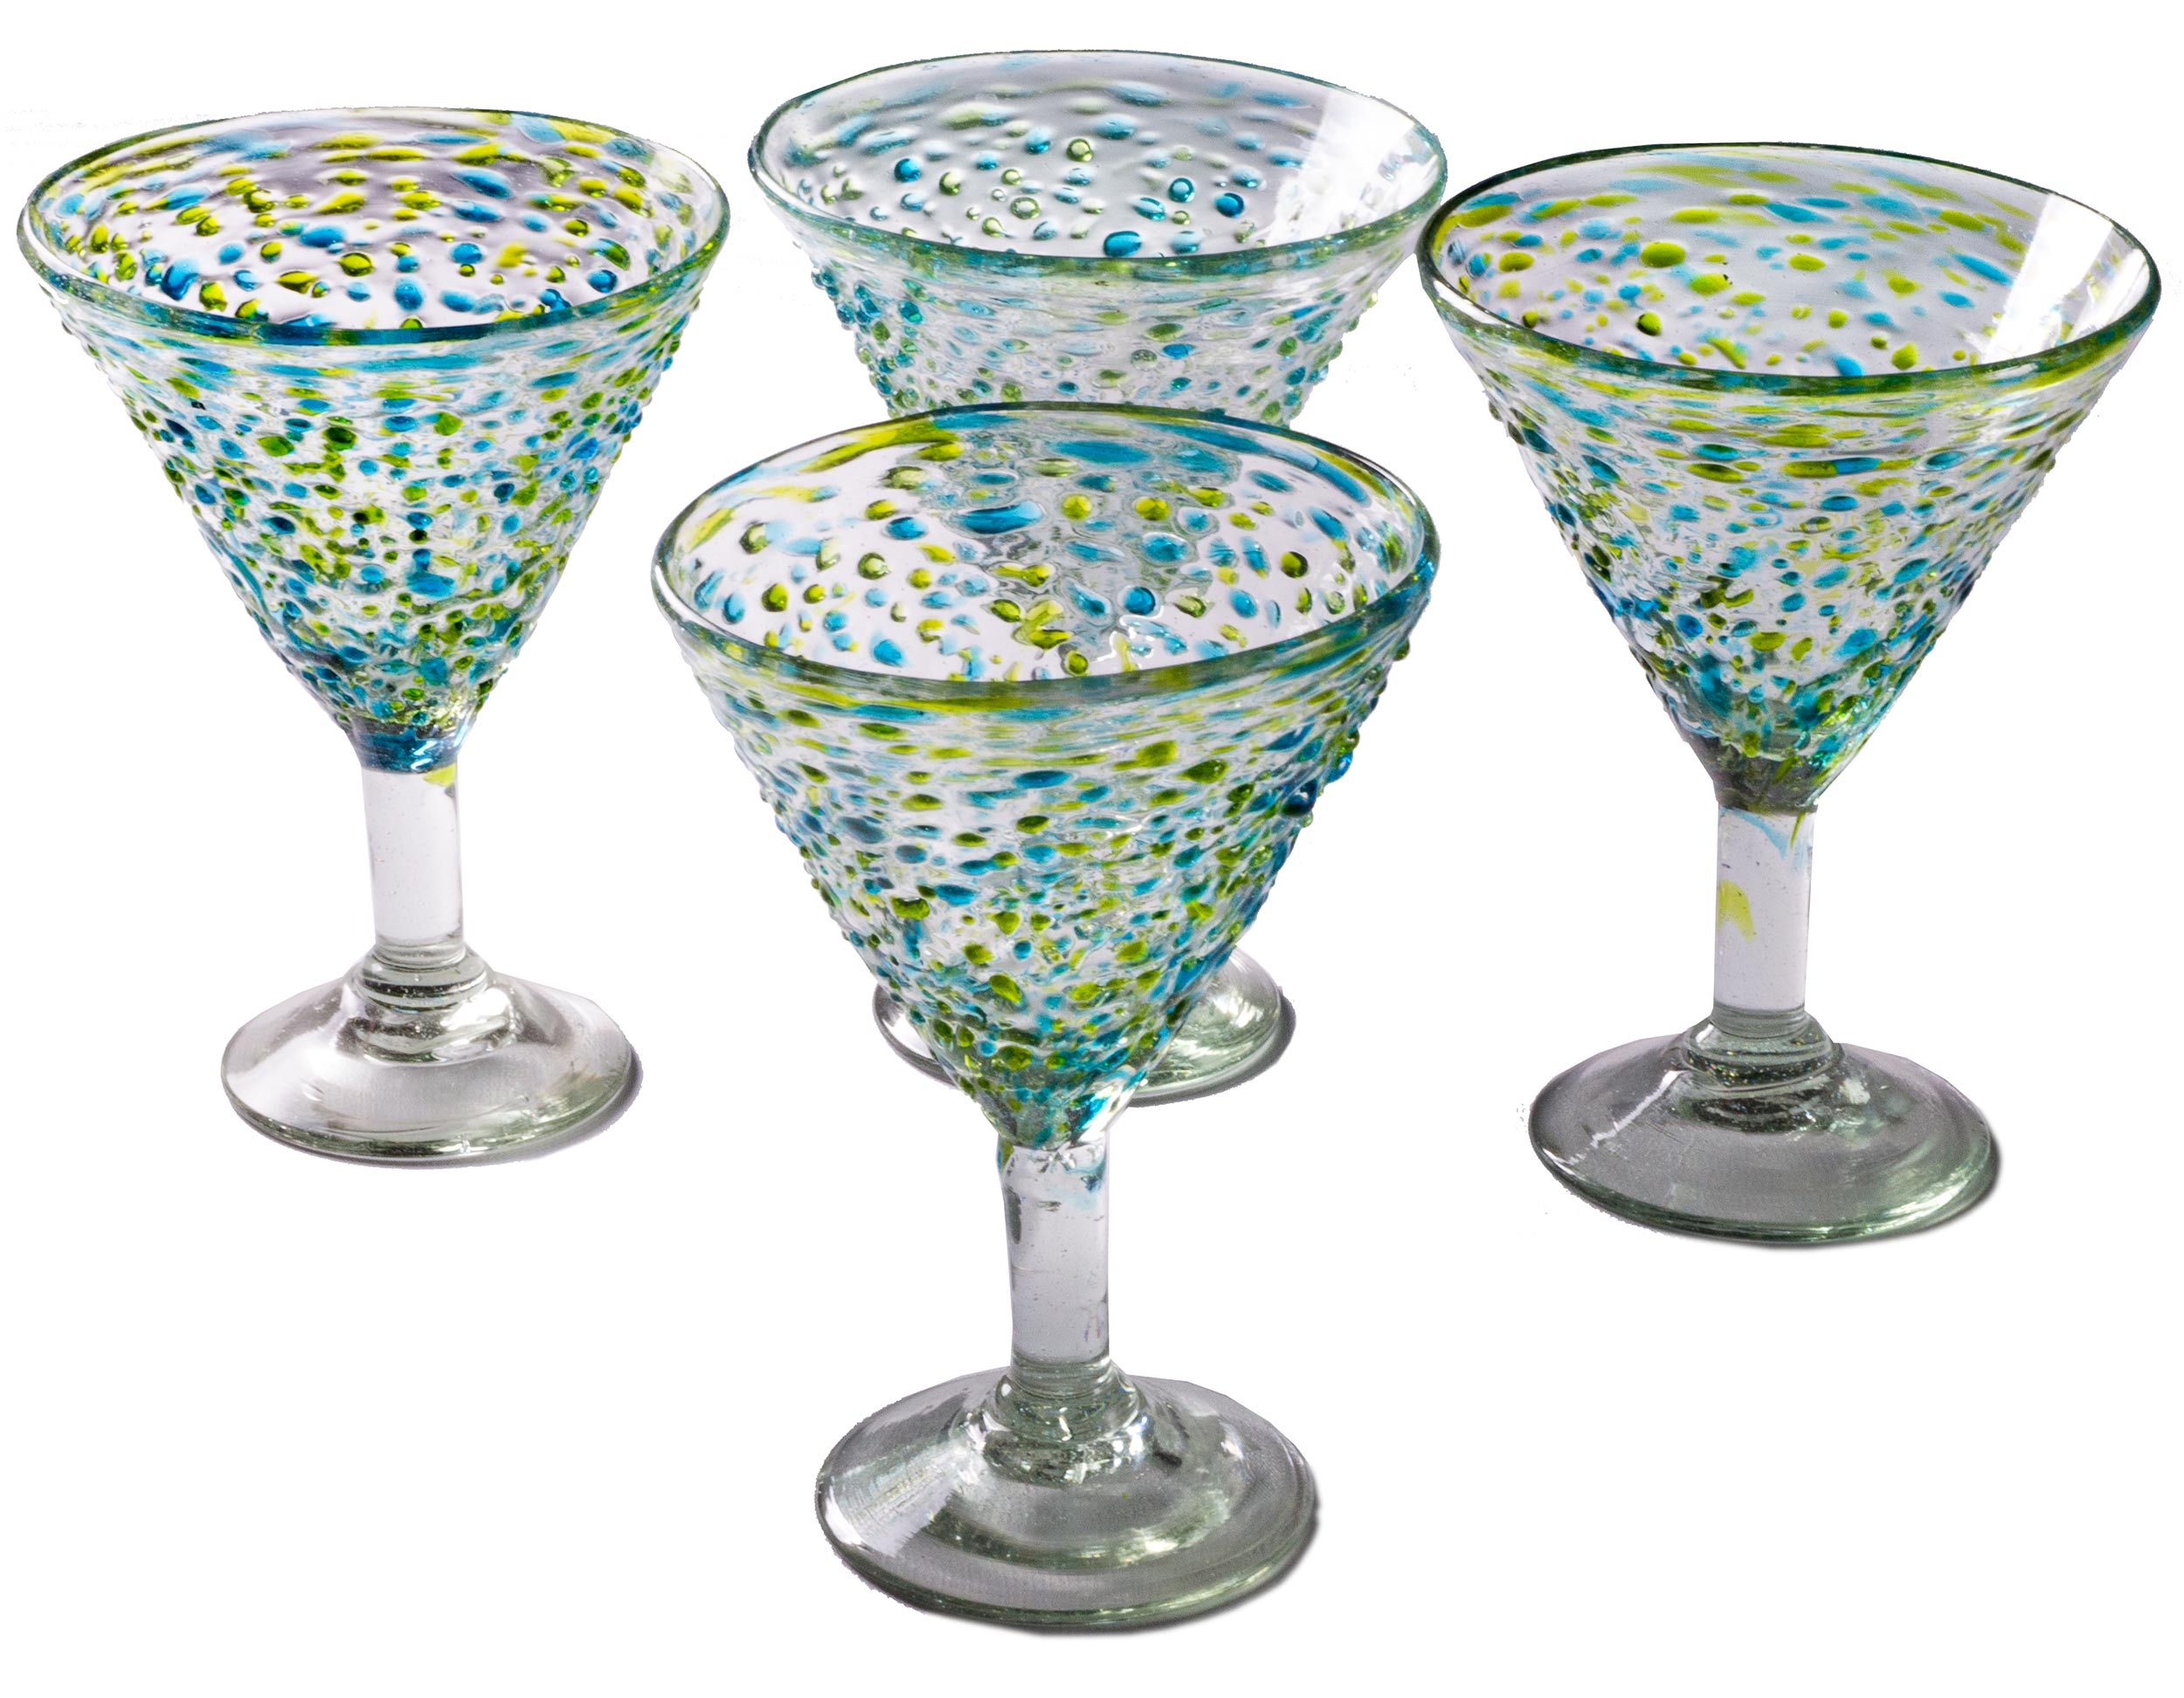 Orion Del Mar 15 oz Margarita - Set of 4 - Orion's Table Mexican Glassware